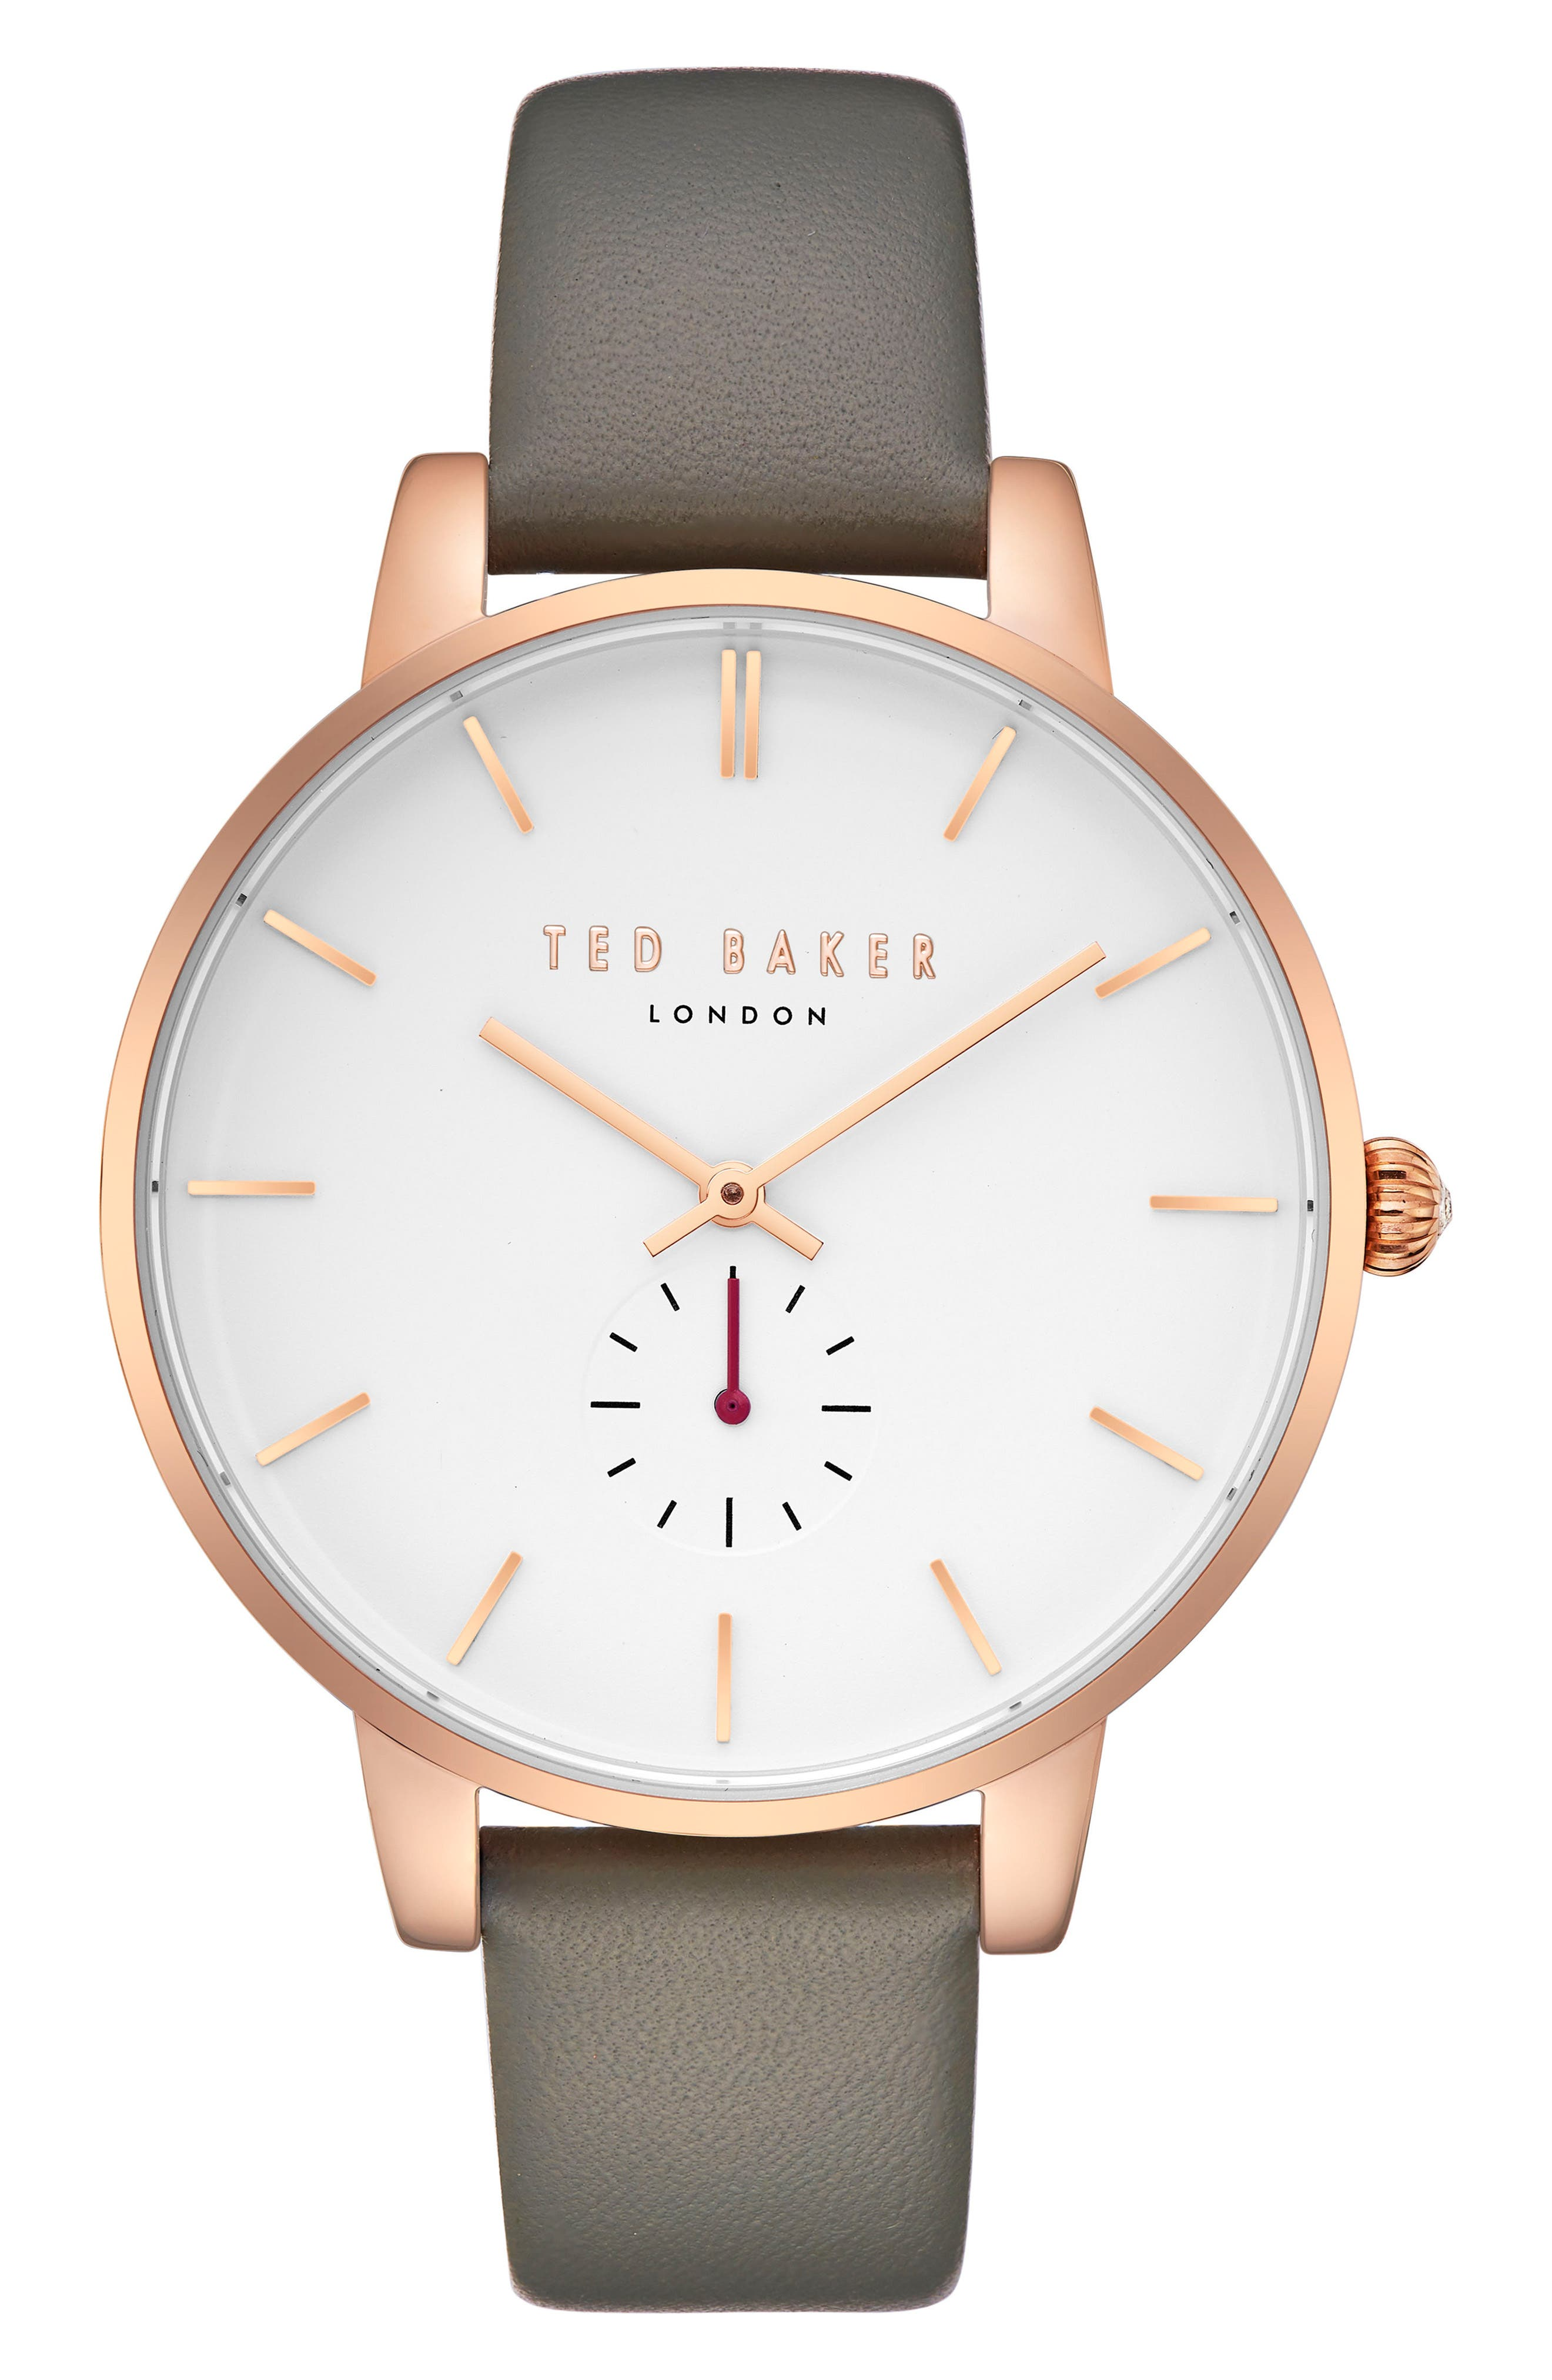 Olivia Leather Strap Watch,                             Main thumbnail 1, color,                             GREY/ WHITE/ ROSE GOLD